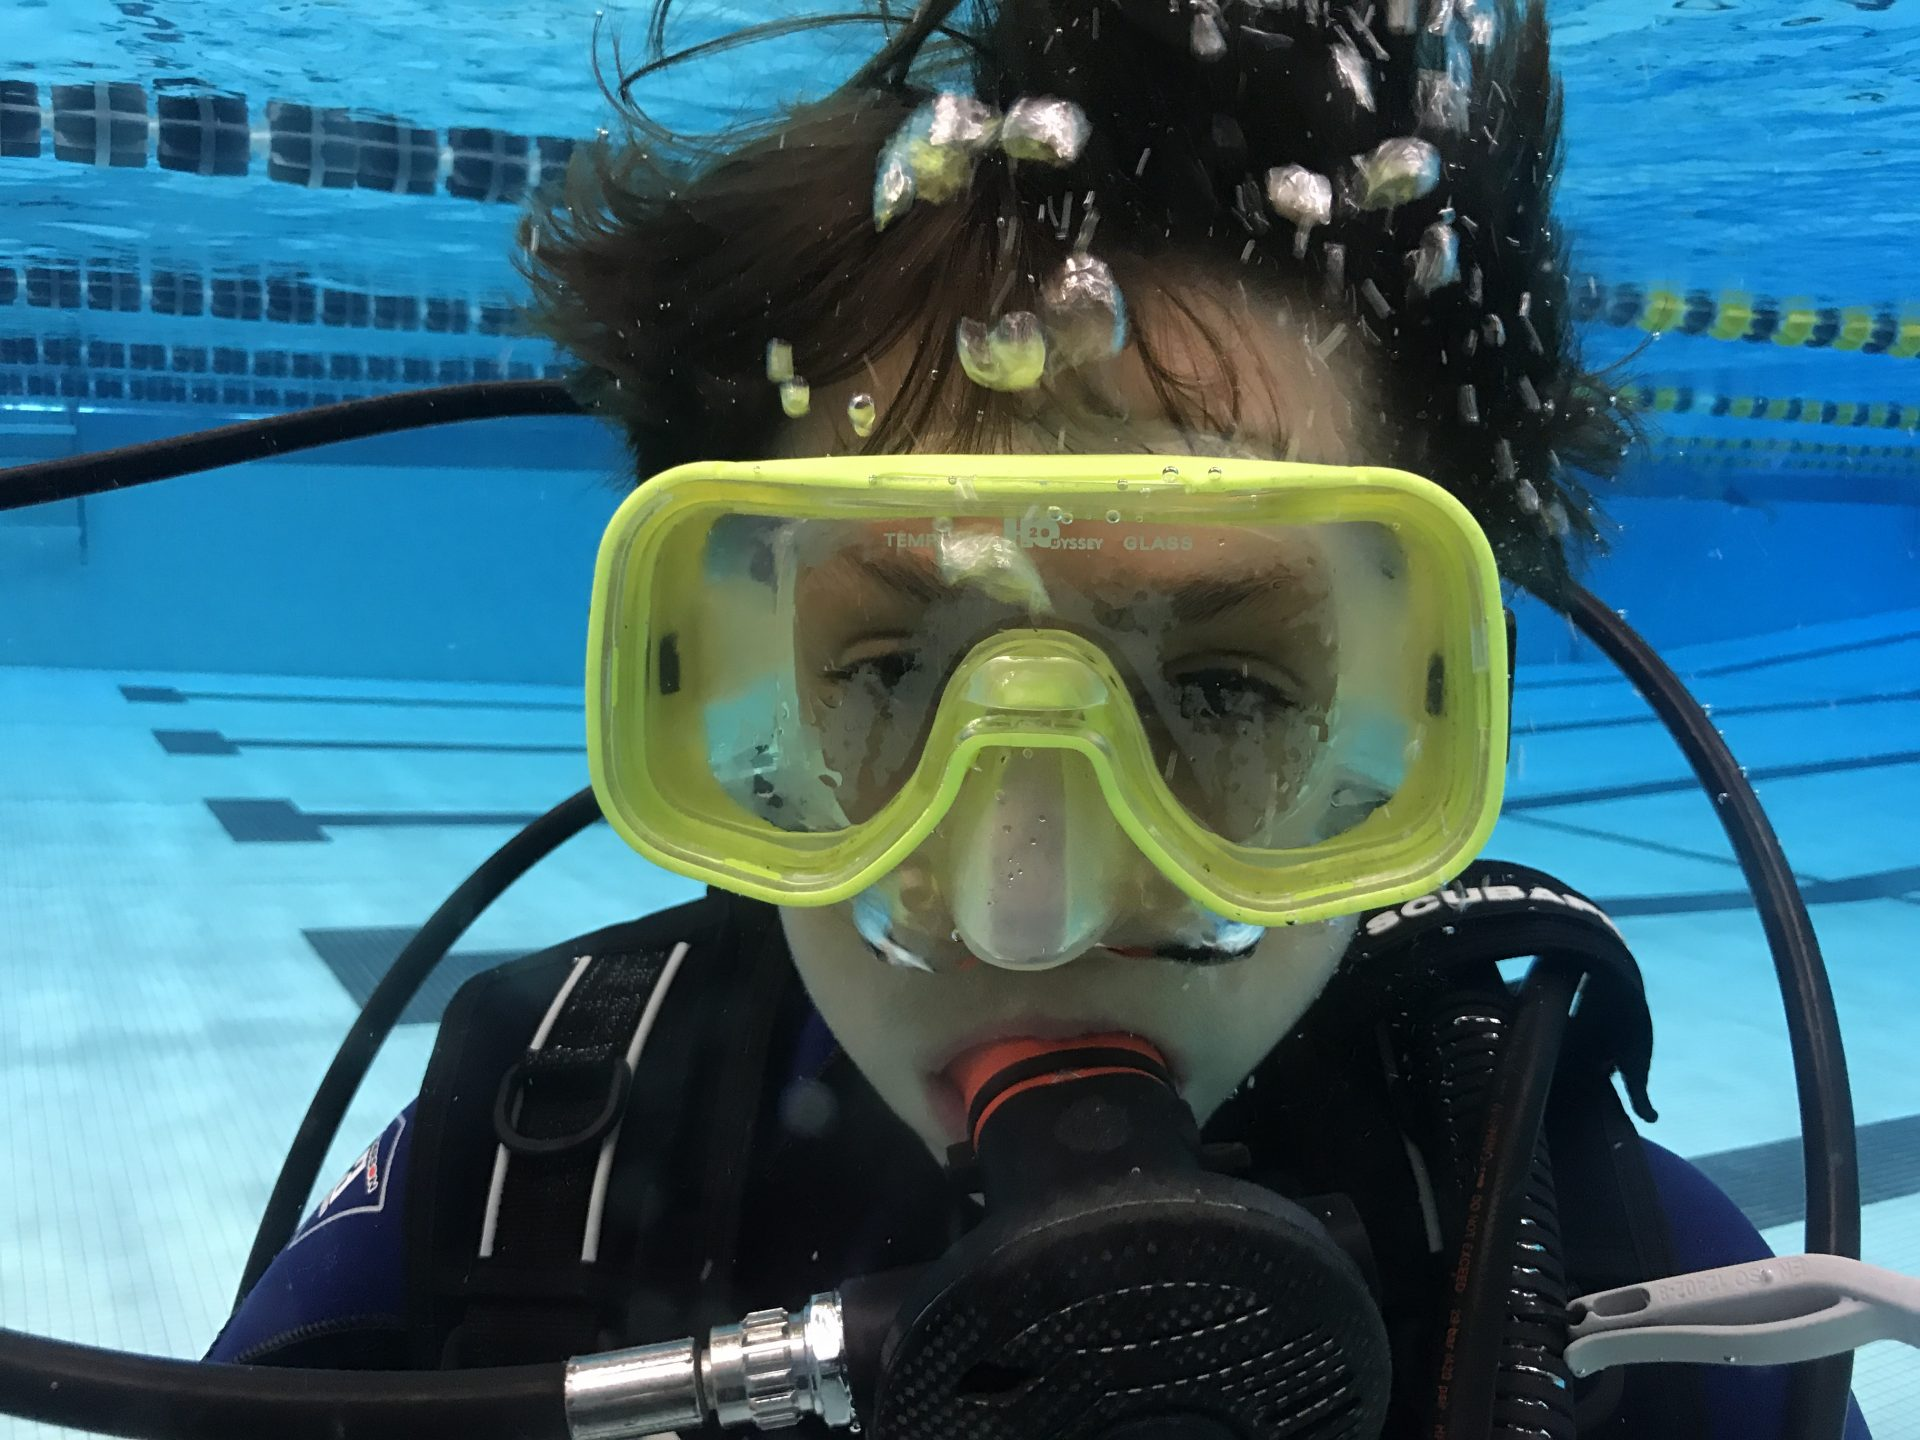 close up scuba diver in pool